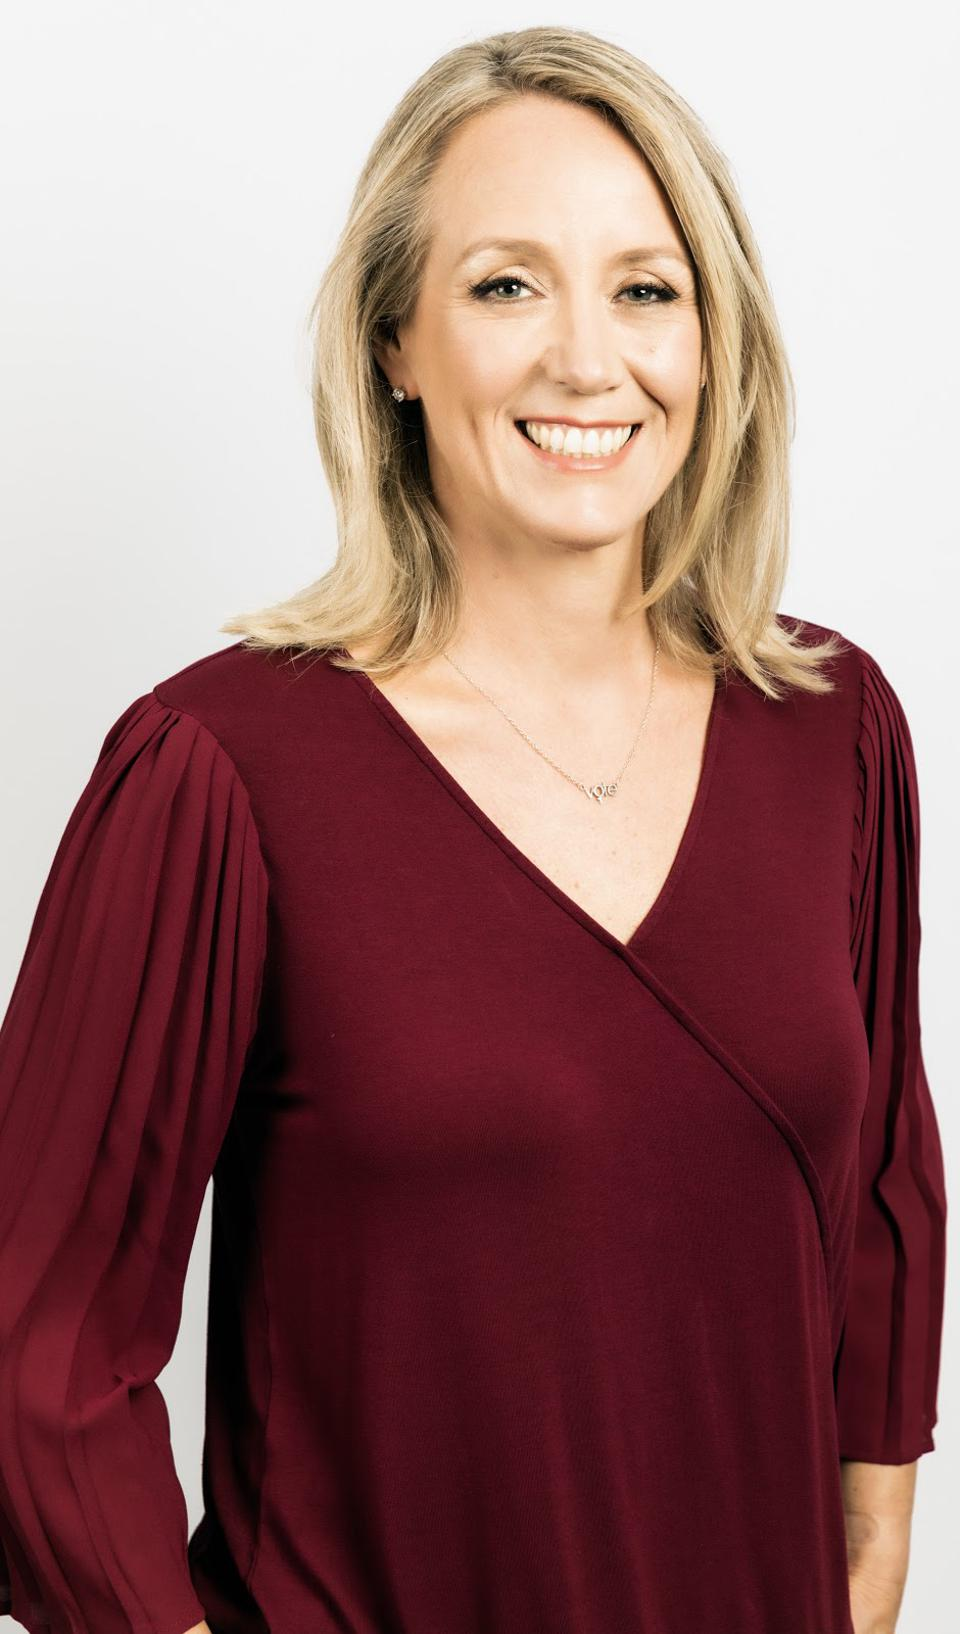 A white woman with blonde hair wearing a burgundy shirt.